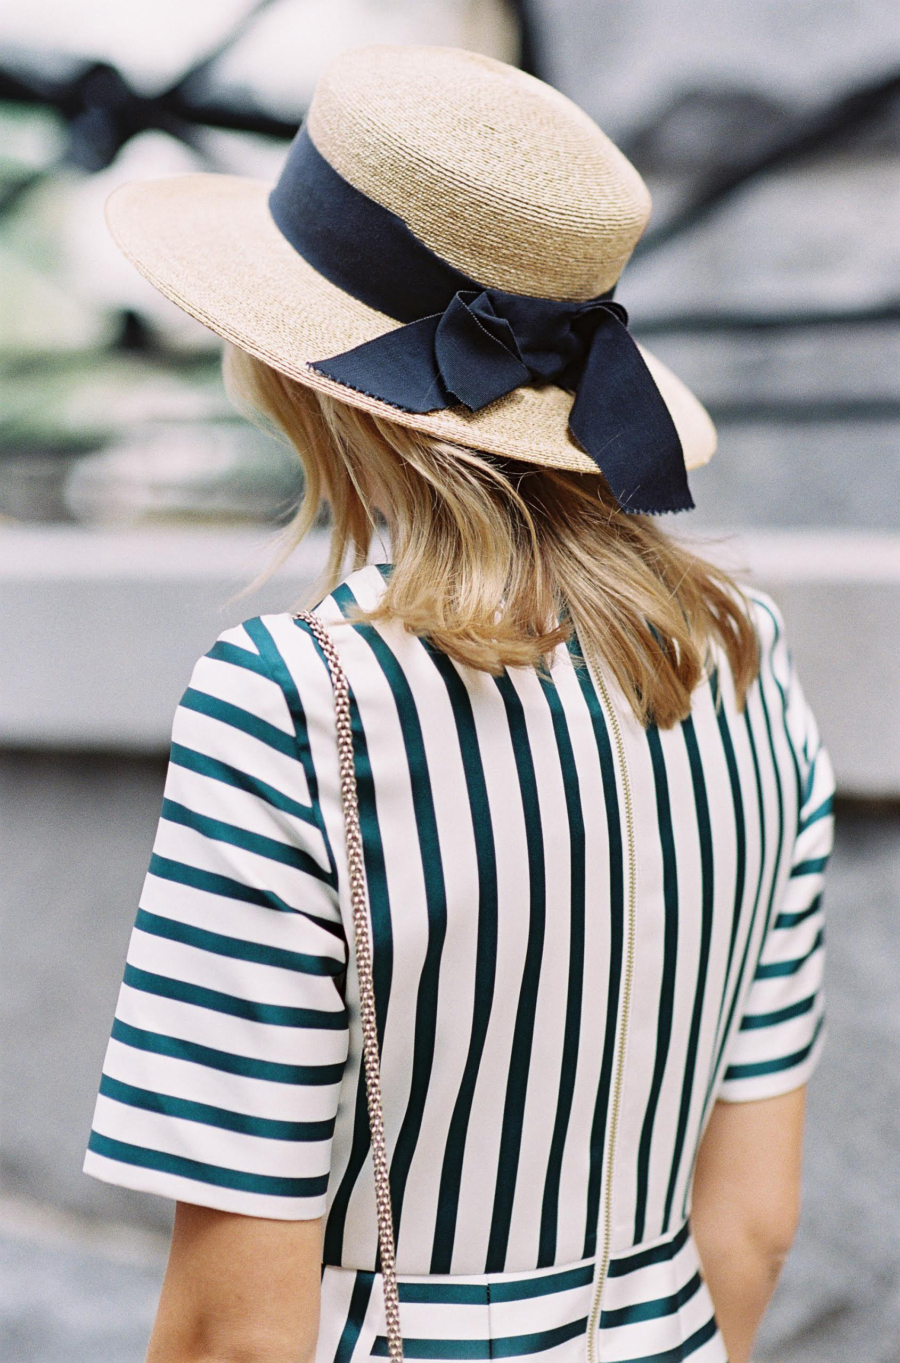 Wide Brim Straw Hat - Find Your New Perfect Beach Hat For Summer // NotJessFashion.com